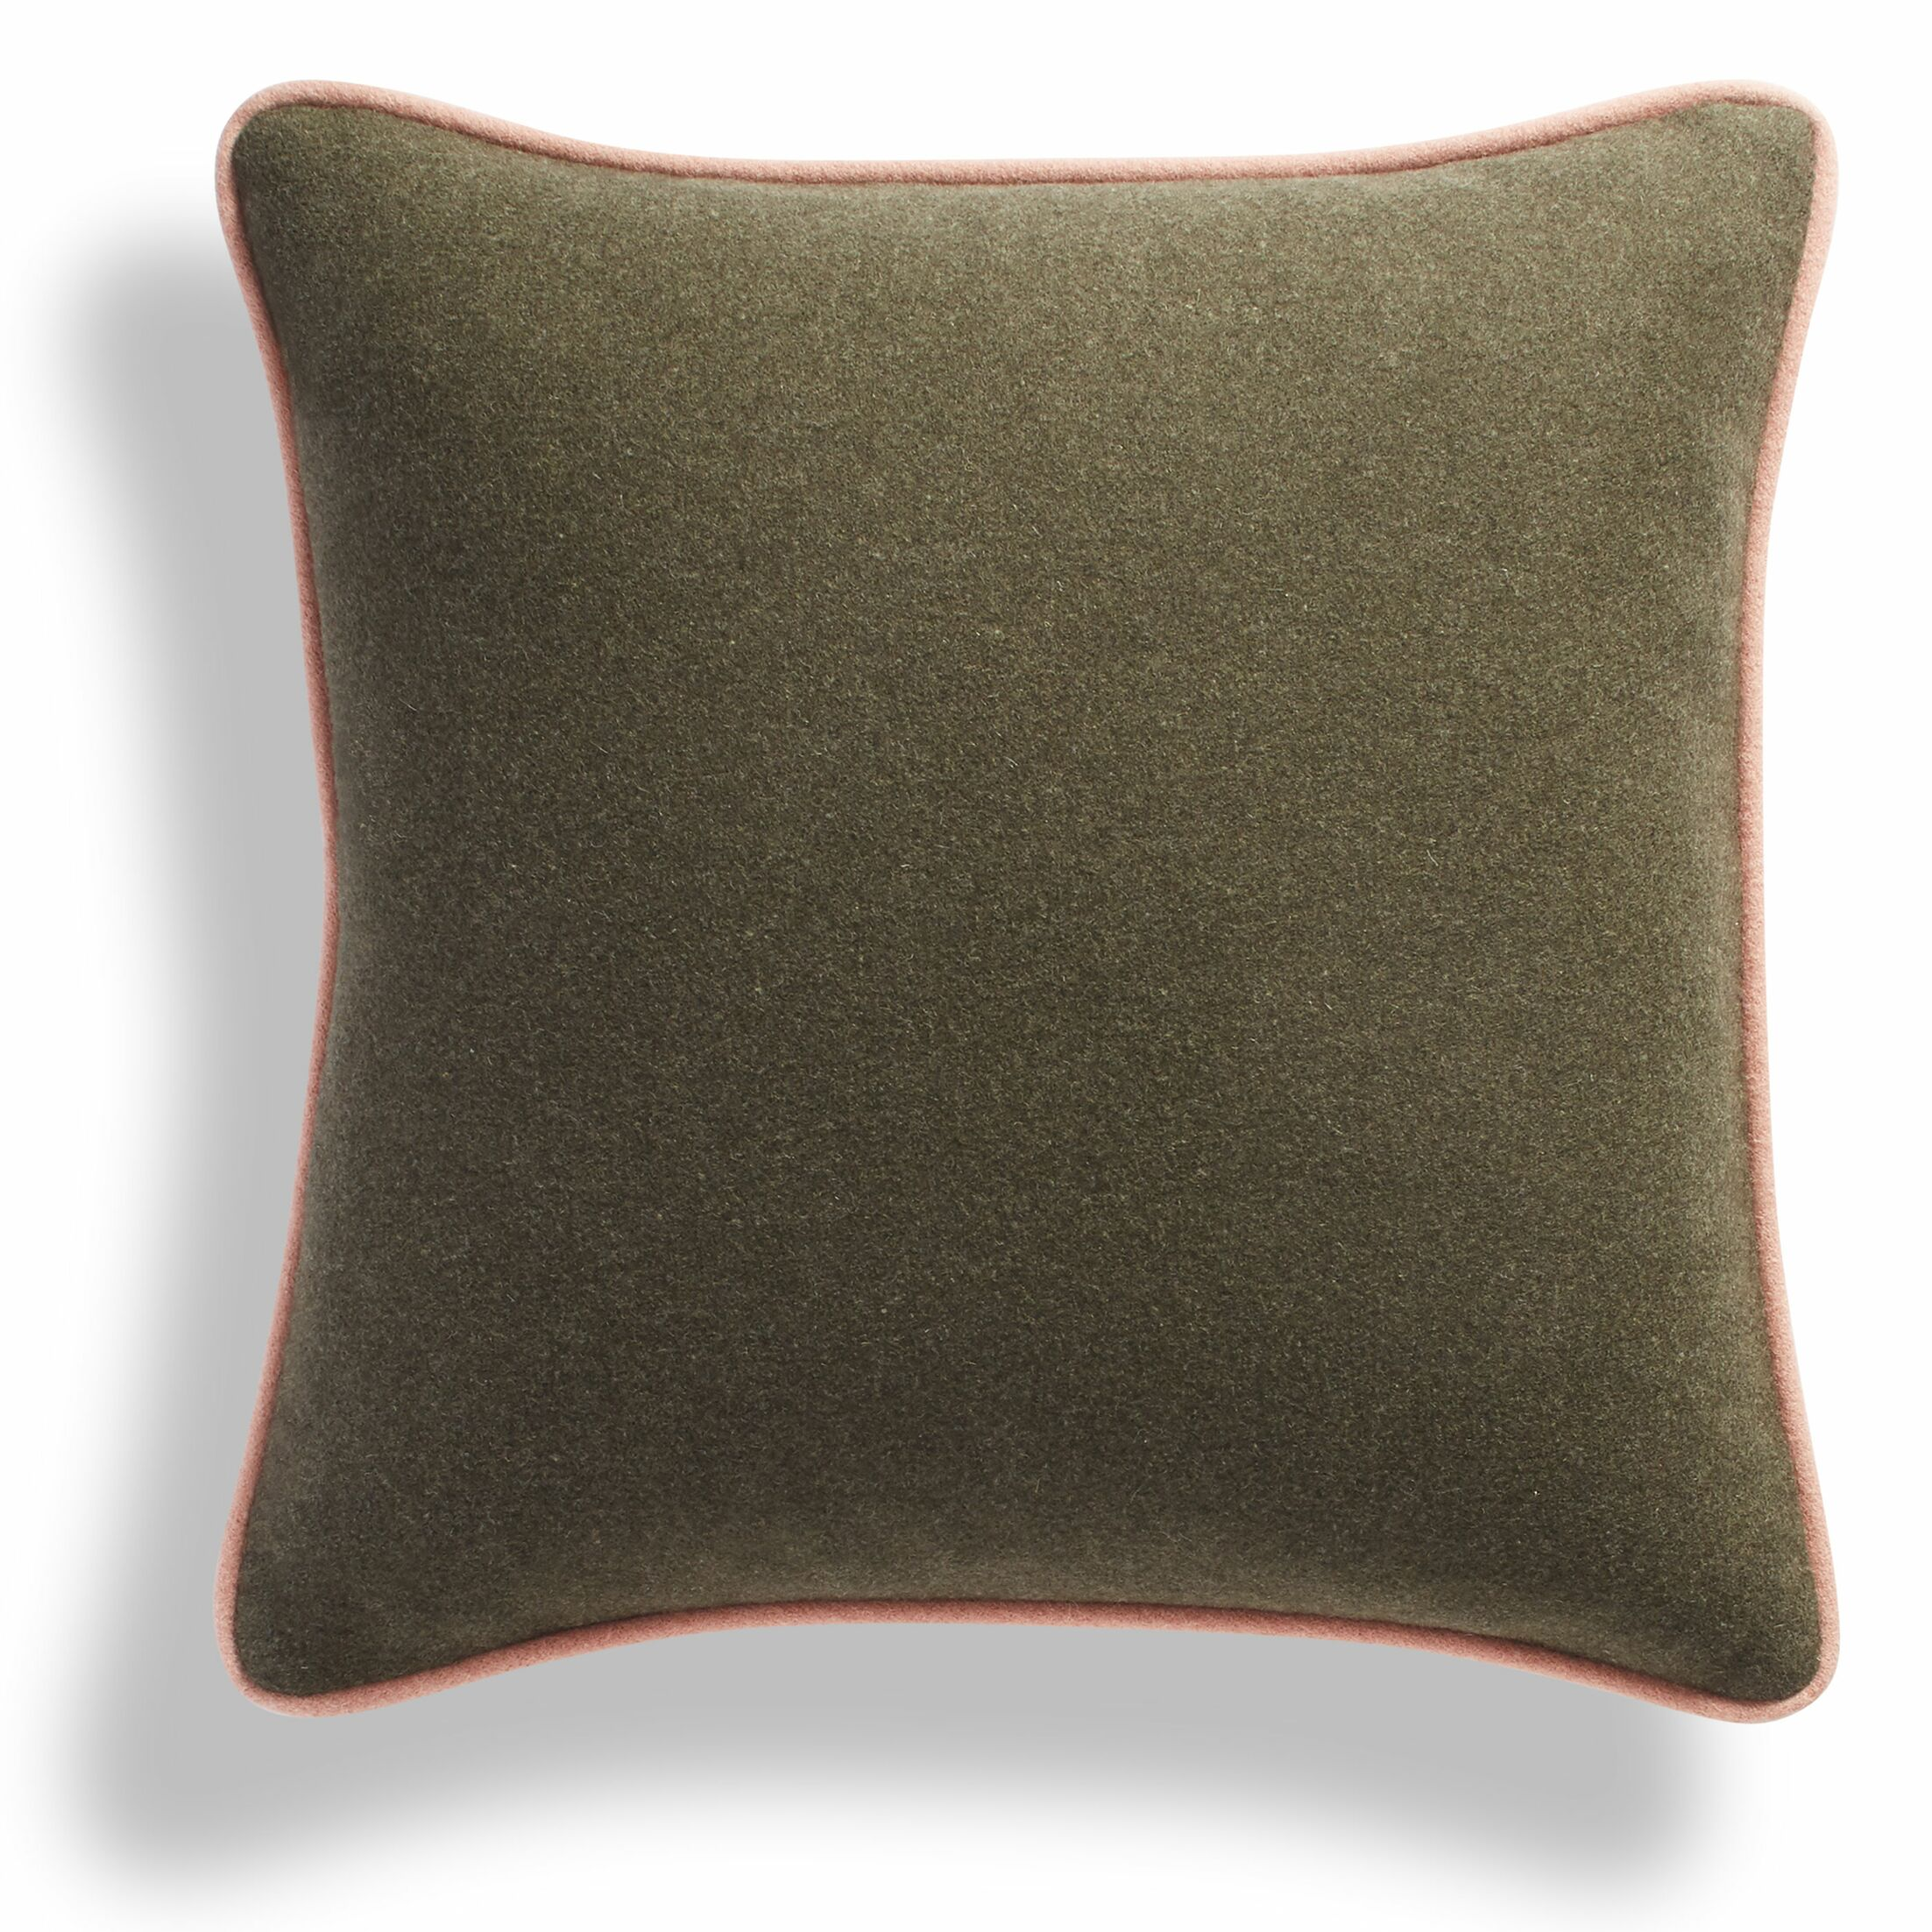 Duck Duck Square Pillow Color: Thurmond Olive/Lilac/Blush Piping